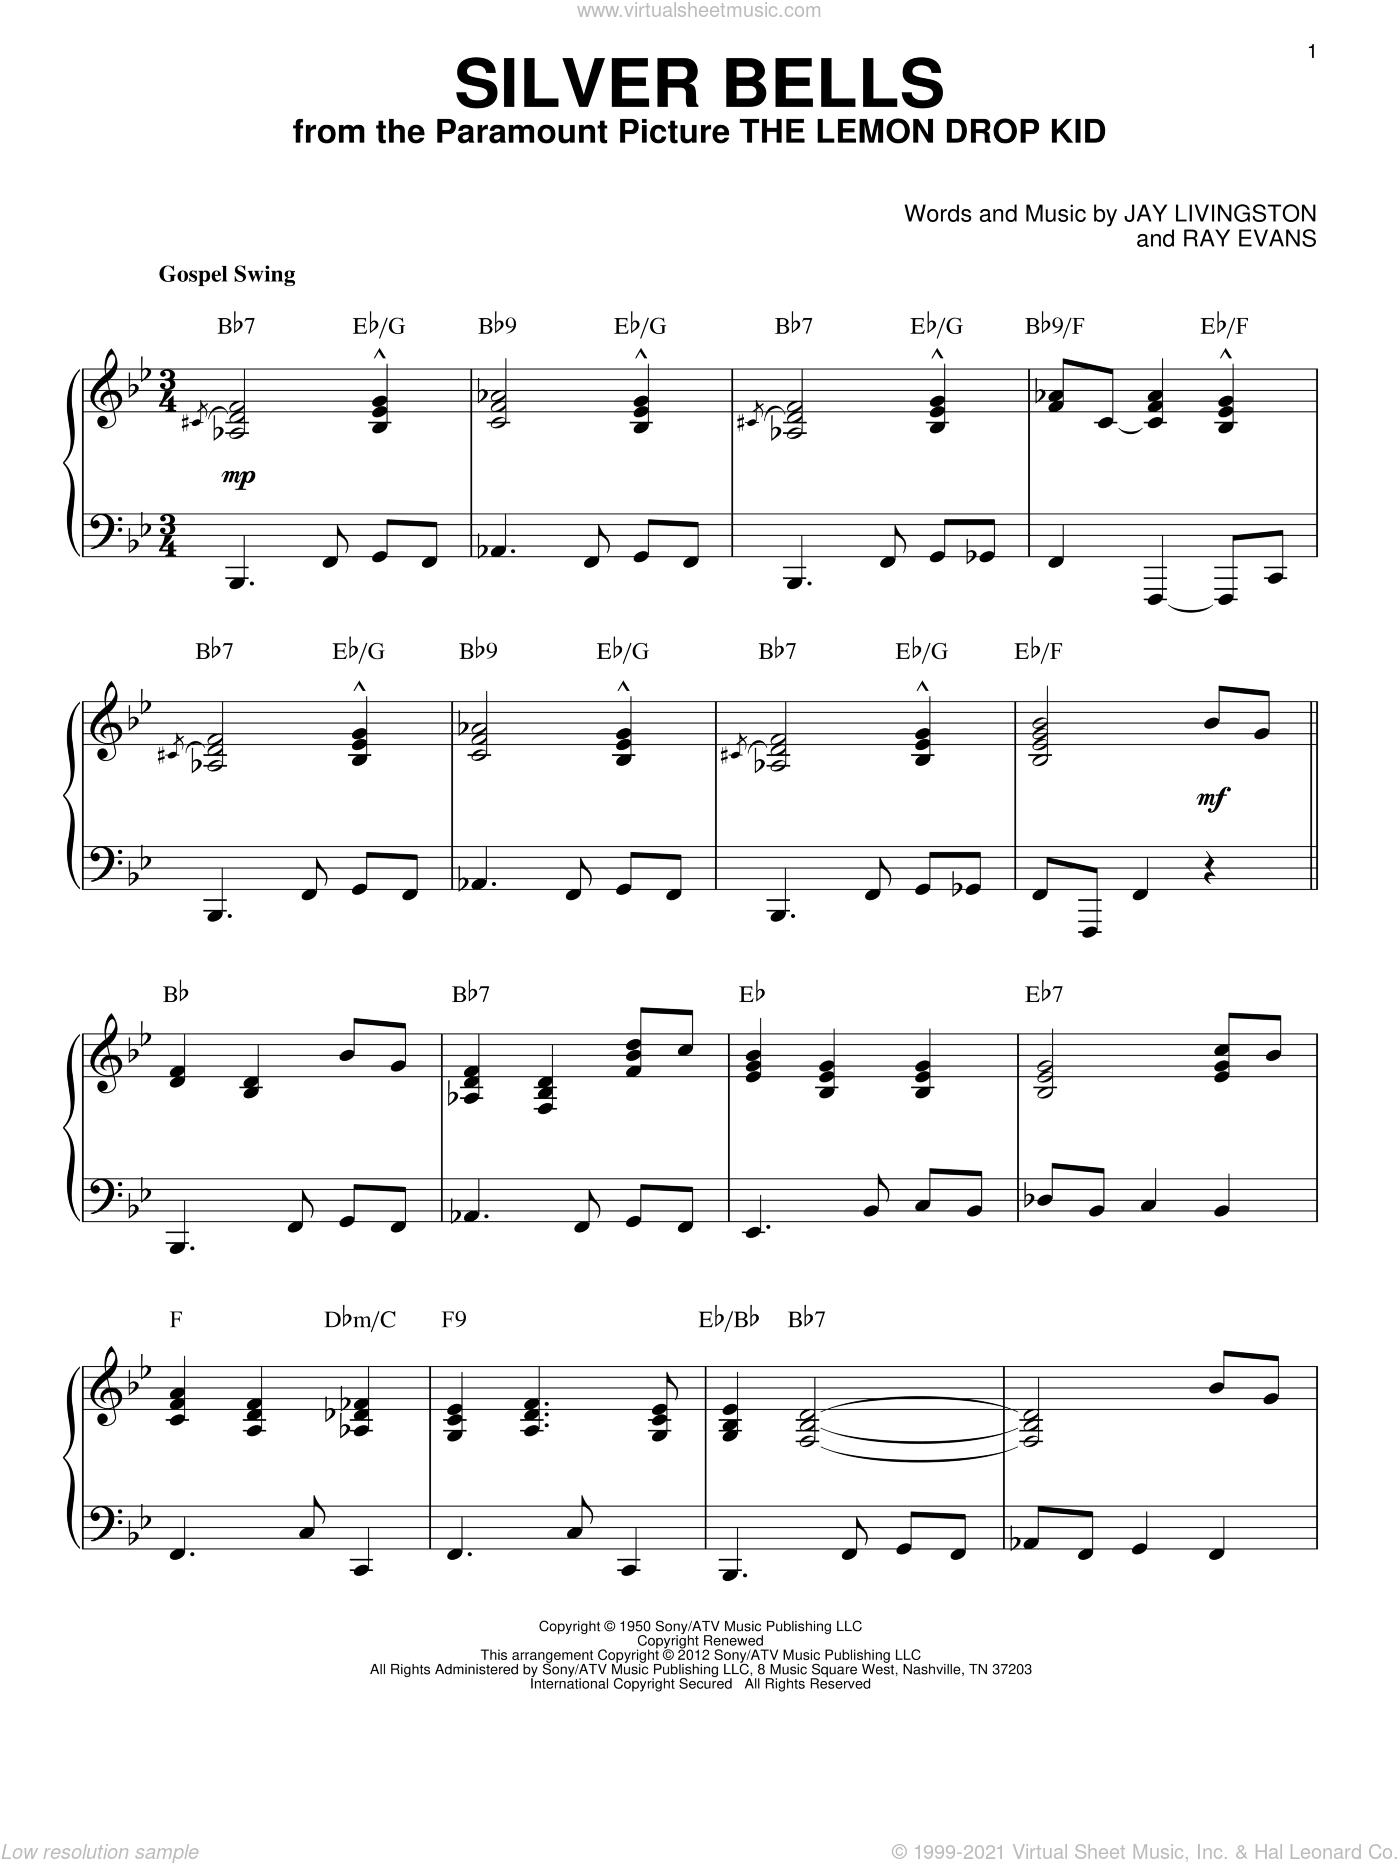 Silver Bells [Jazz version] (arr. Brent Edstrom) sheet music for piano solo by Jay Livingston and Ray Evans, intermediate skill level